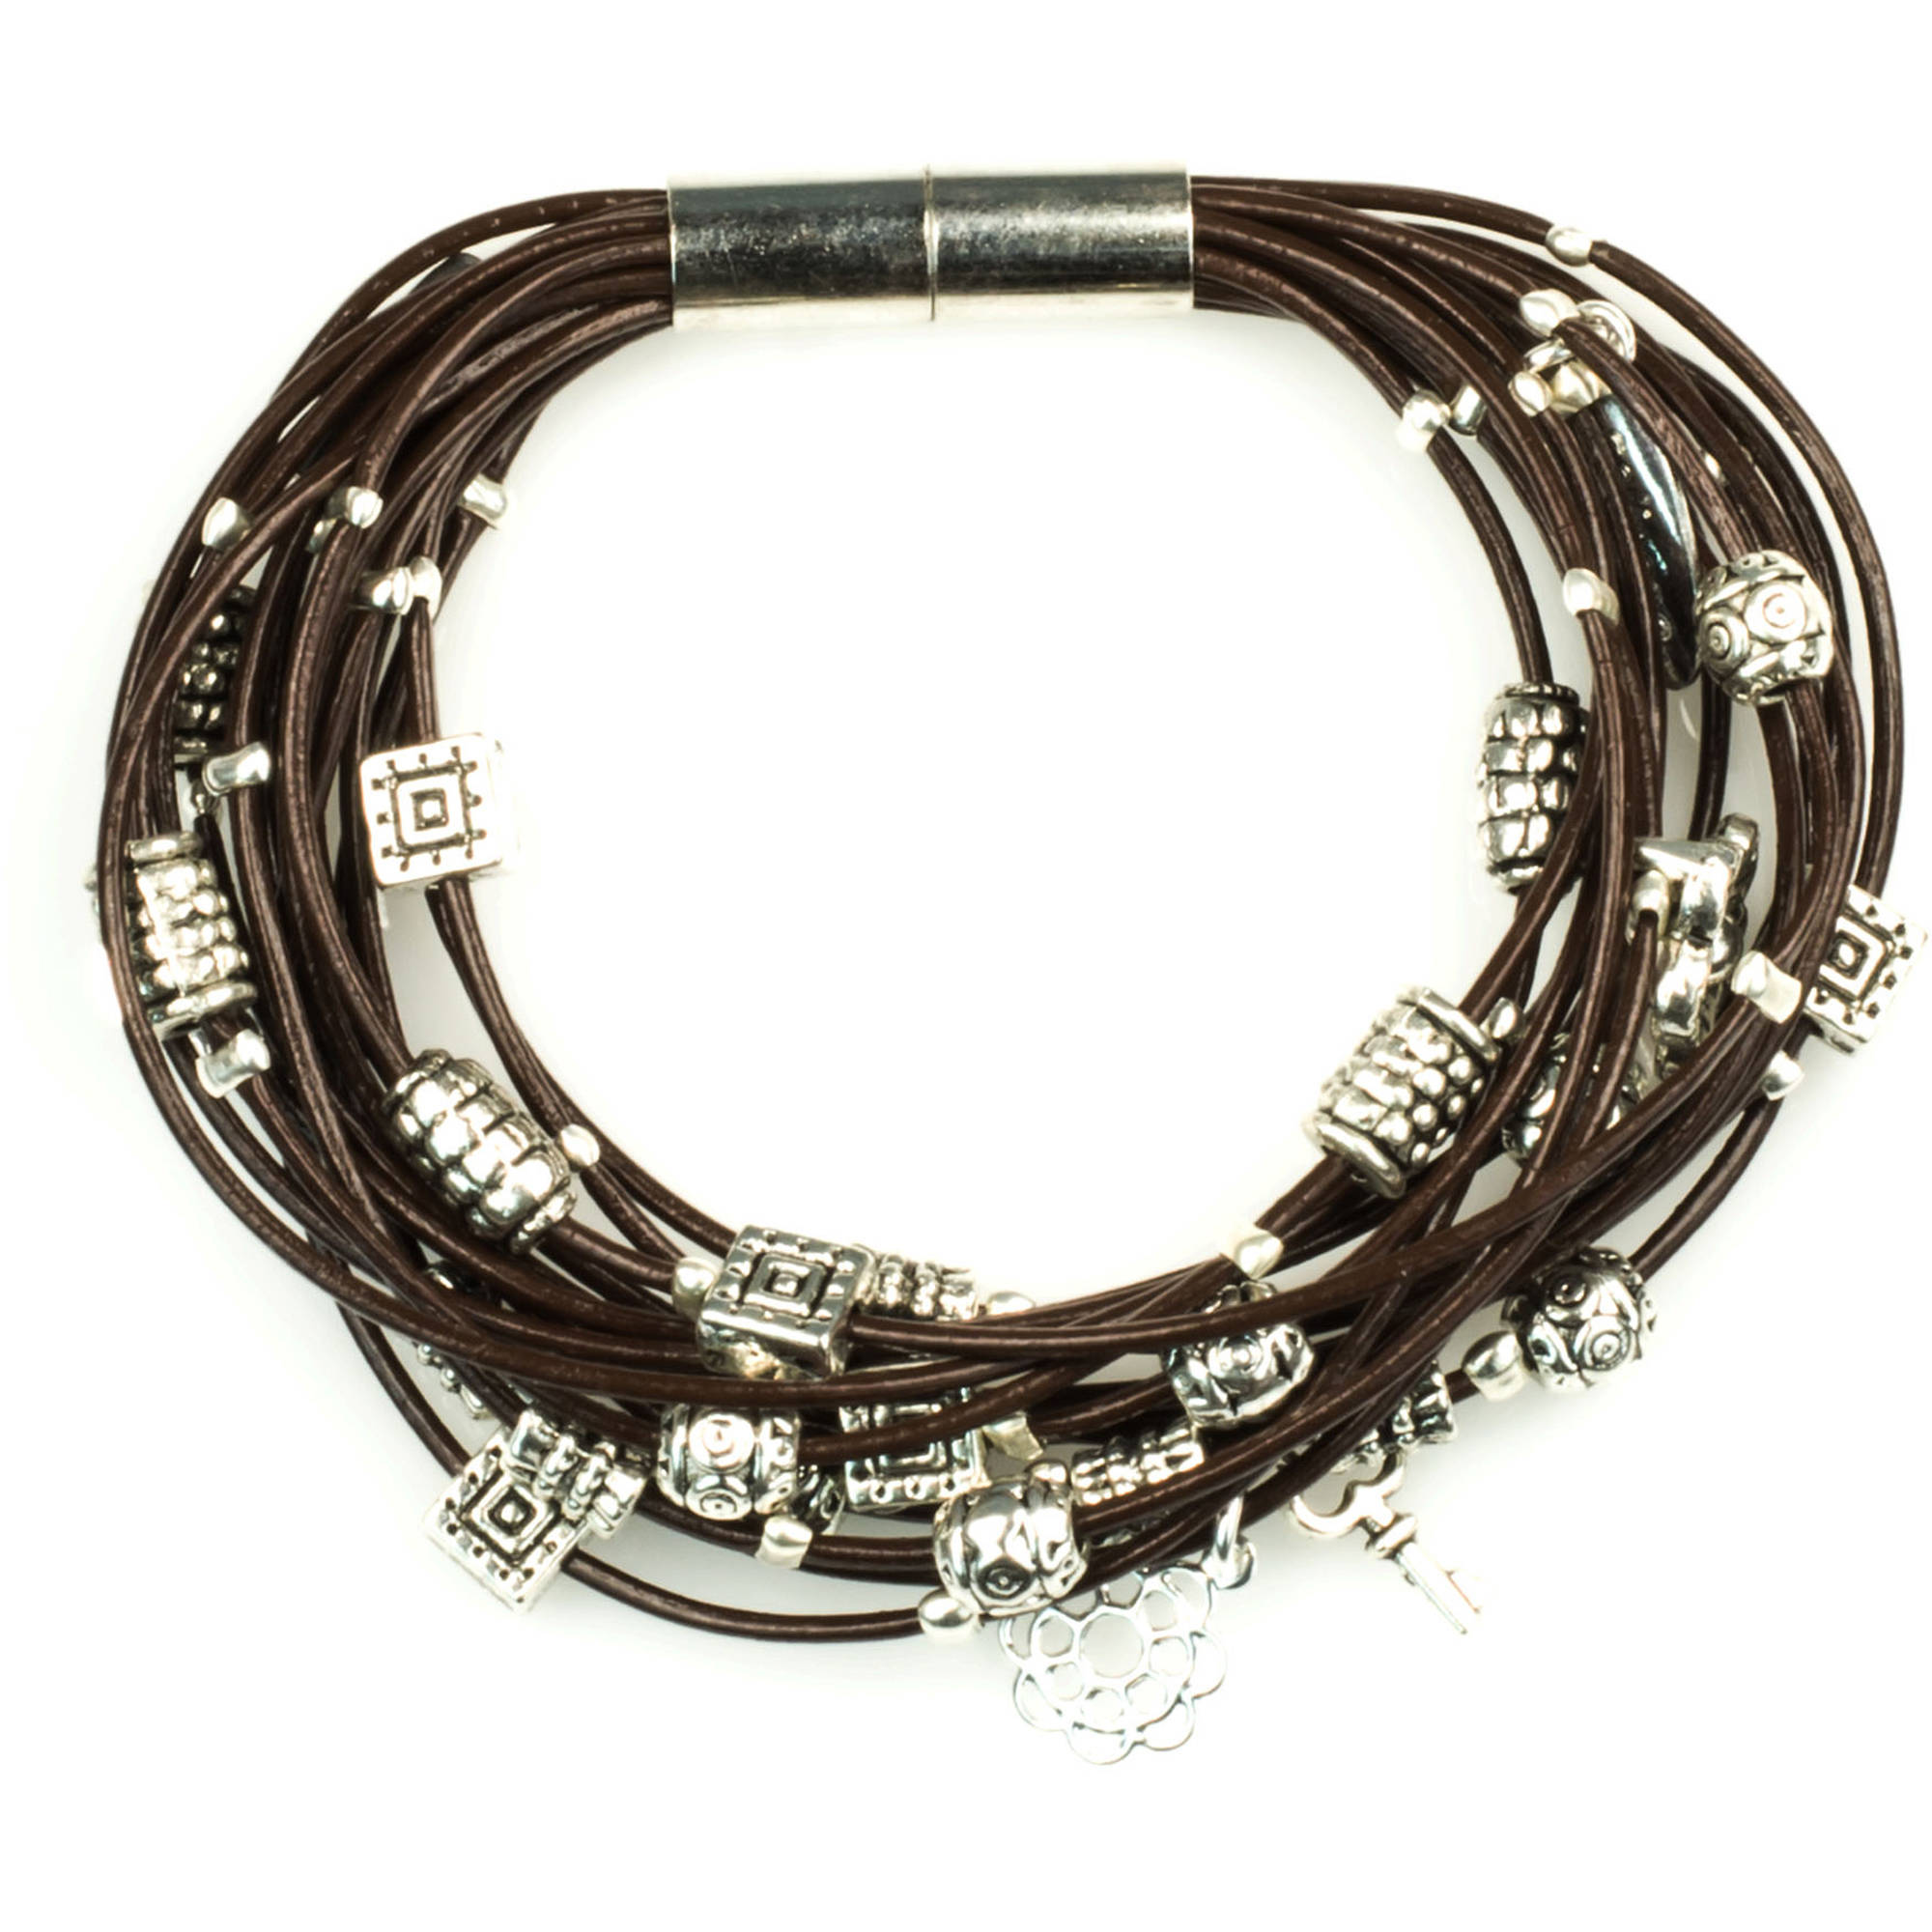 Miss Zoe by Calinana Multi Cord Leather Bracelet, Brown/Silver